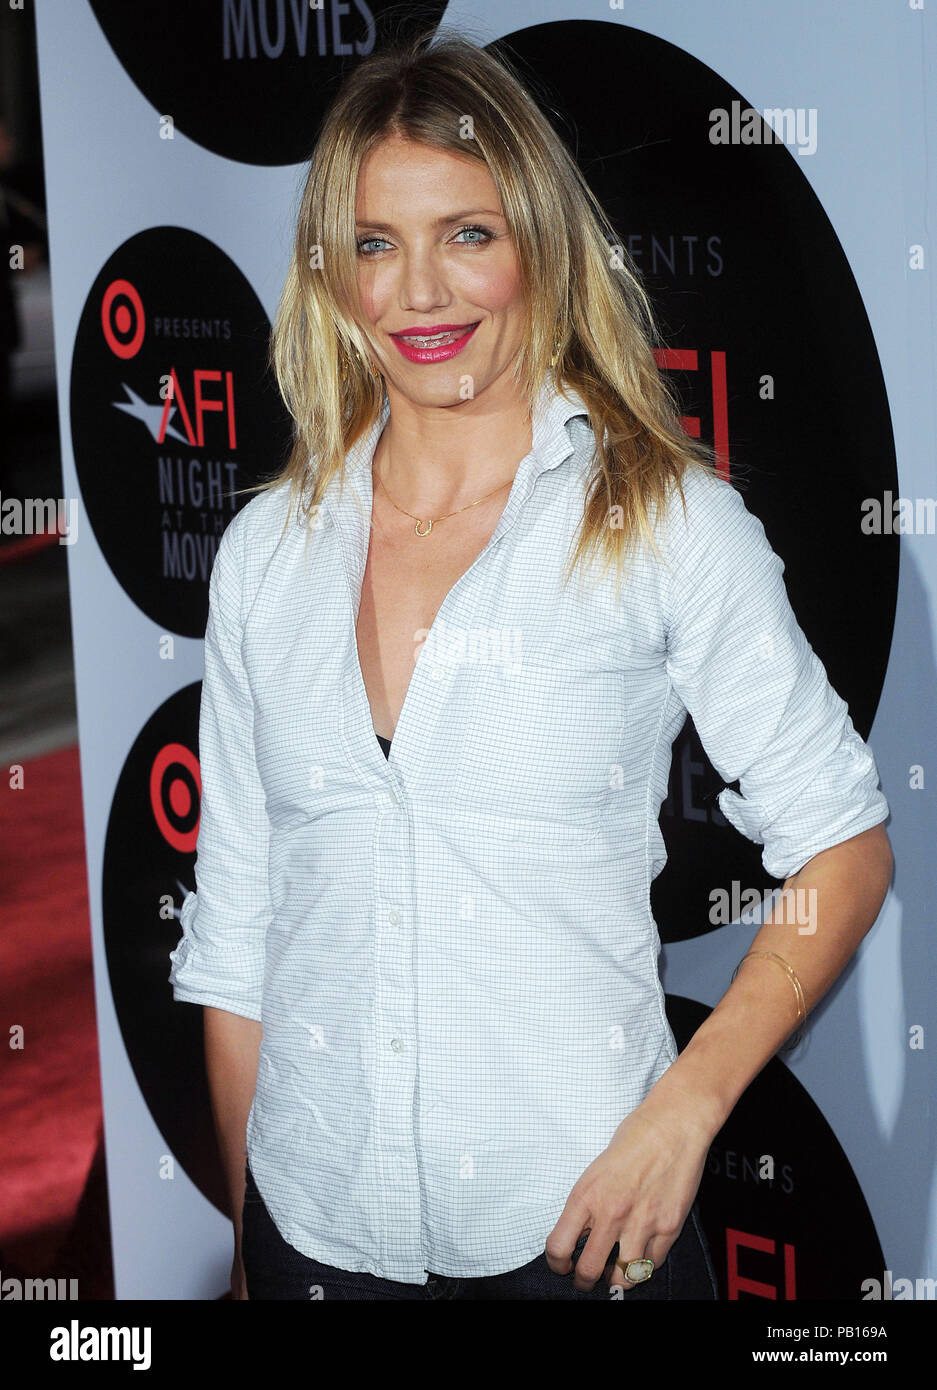 Cameron Diaz Afi Night At The Movies Twelfe Classic Films At The